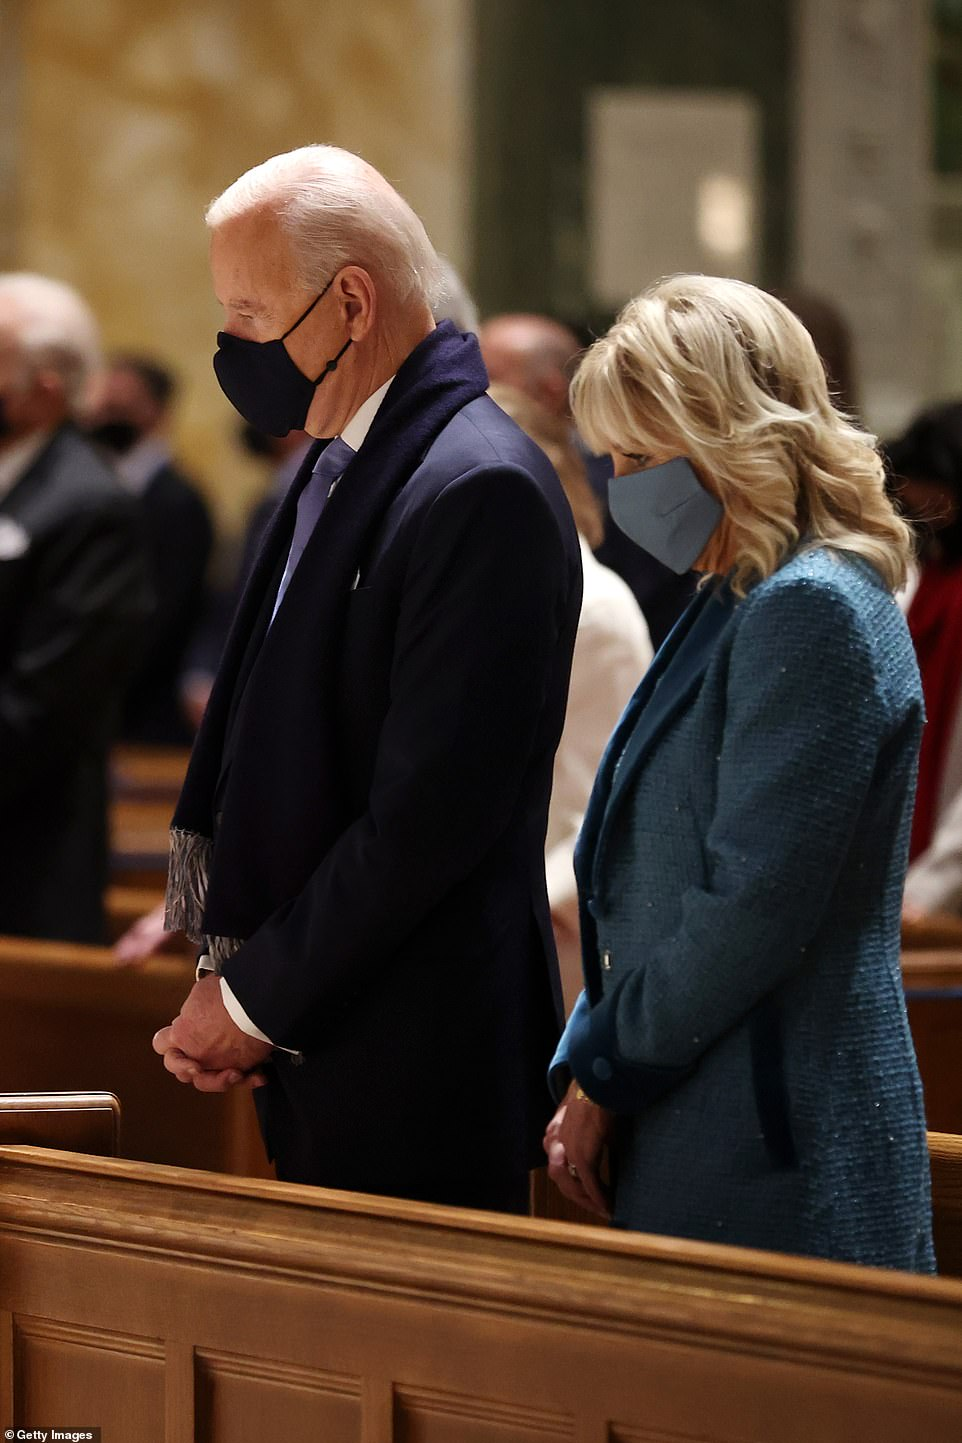 Joe Biden shows where the real power lies as he attends mass with leaders from BOTH parties